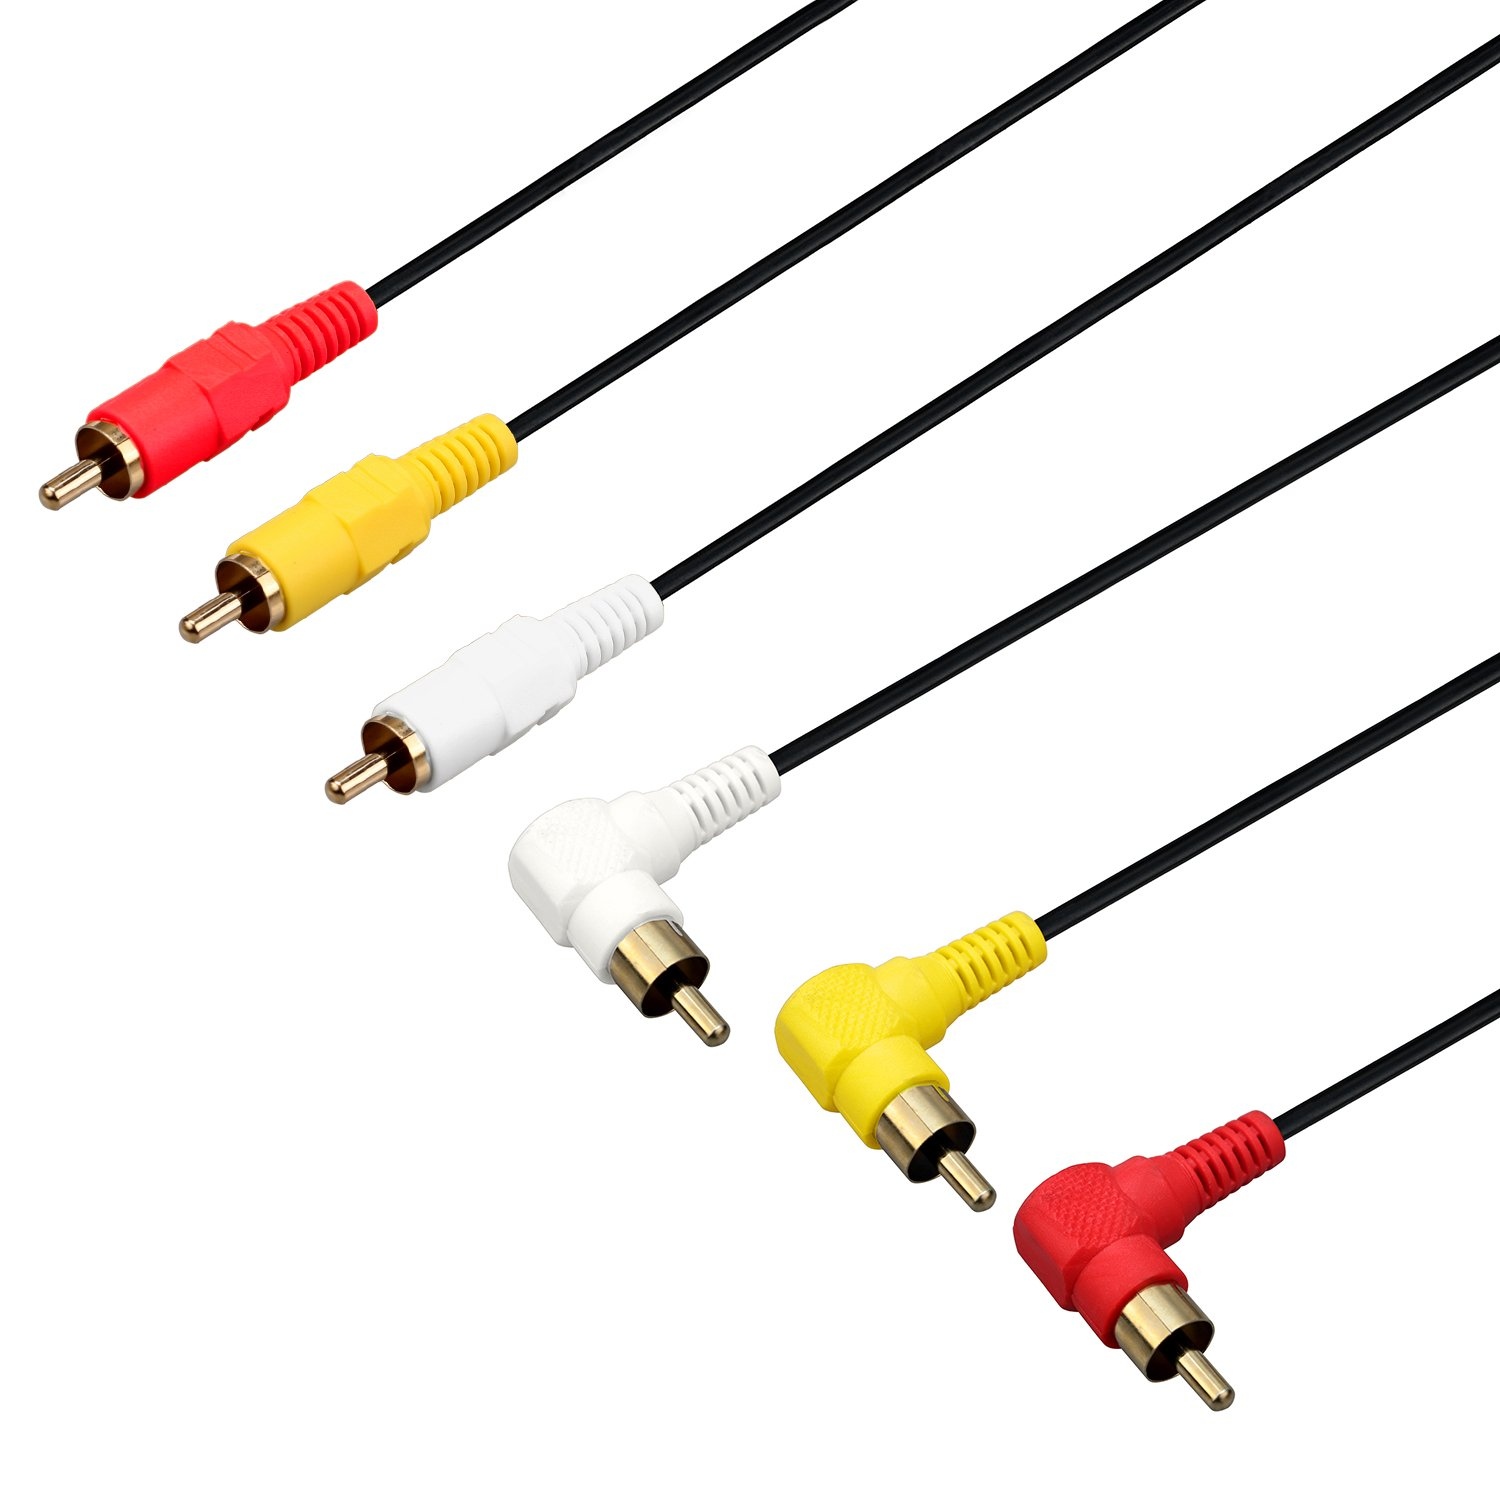 Amazon.com: 3 RCA Cable(1.6FT) - Premium Gold Plated 90 Degree Right Angle RCA Audio / Video Cable 3 Male To 3 Male Composite Video Audio A/V AV Cable ...